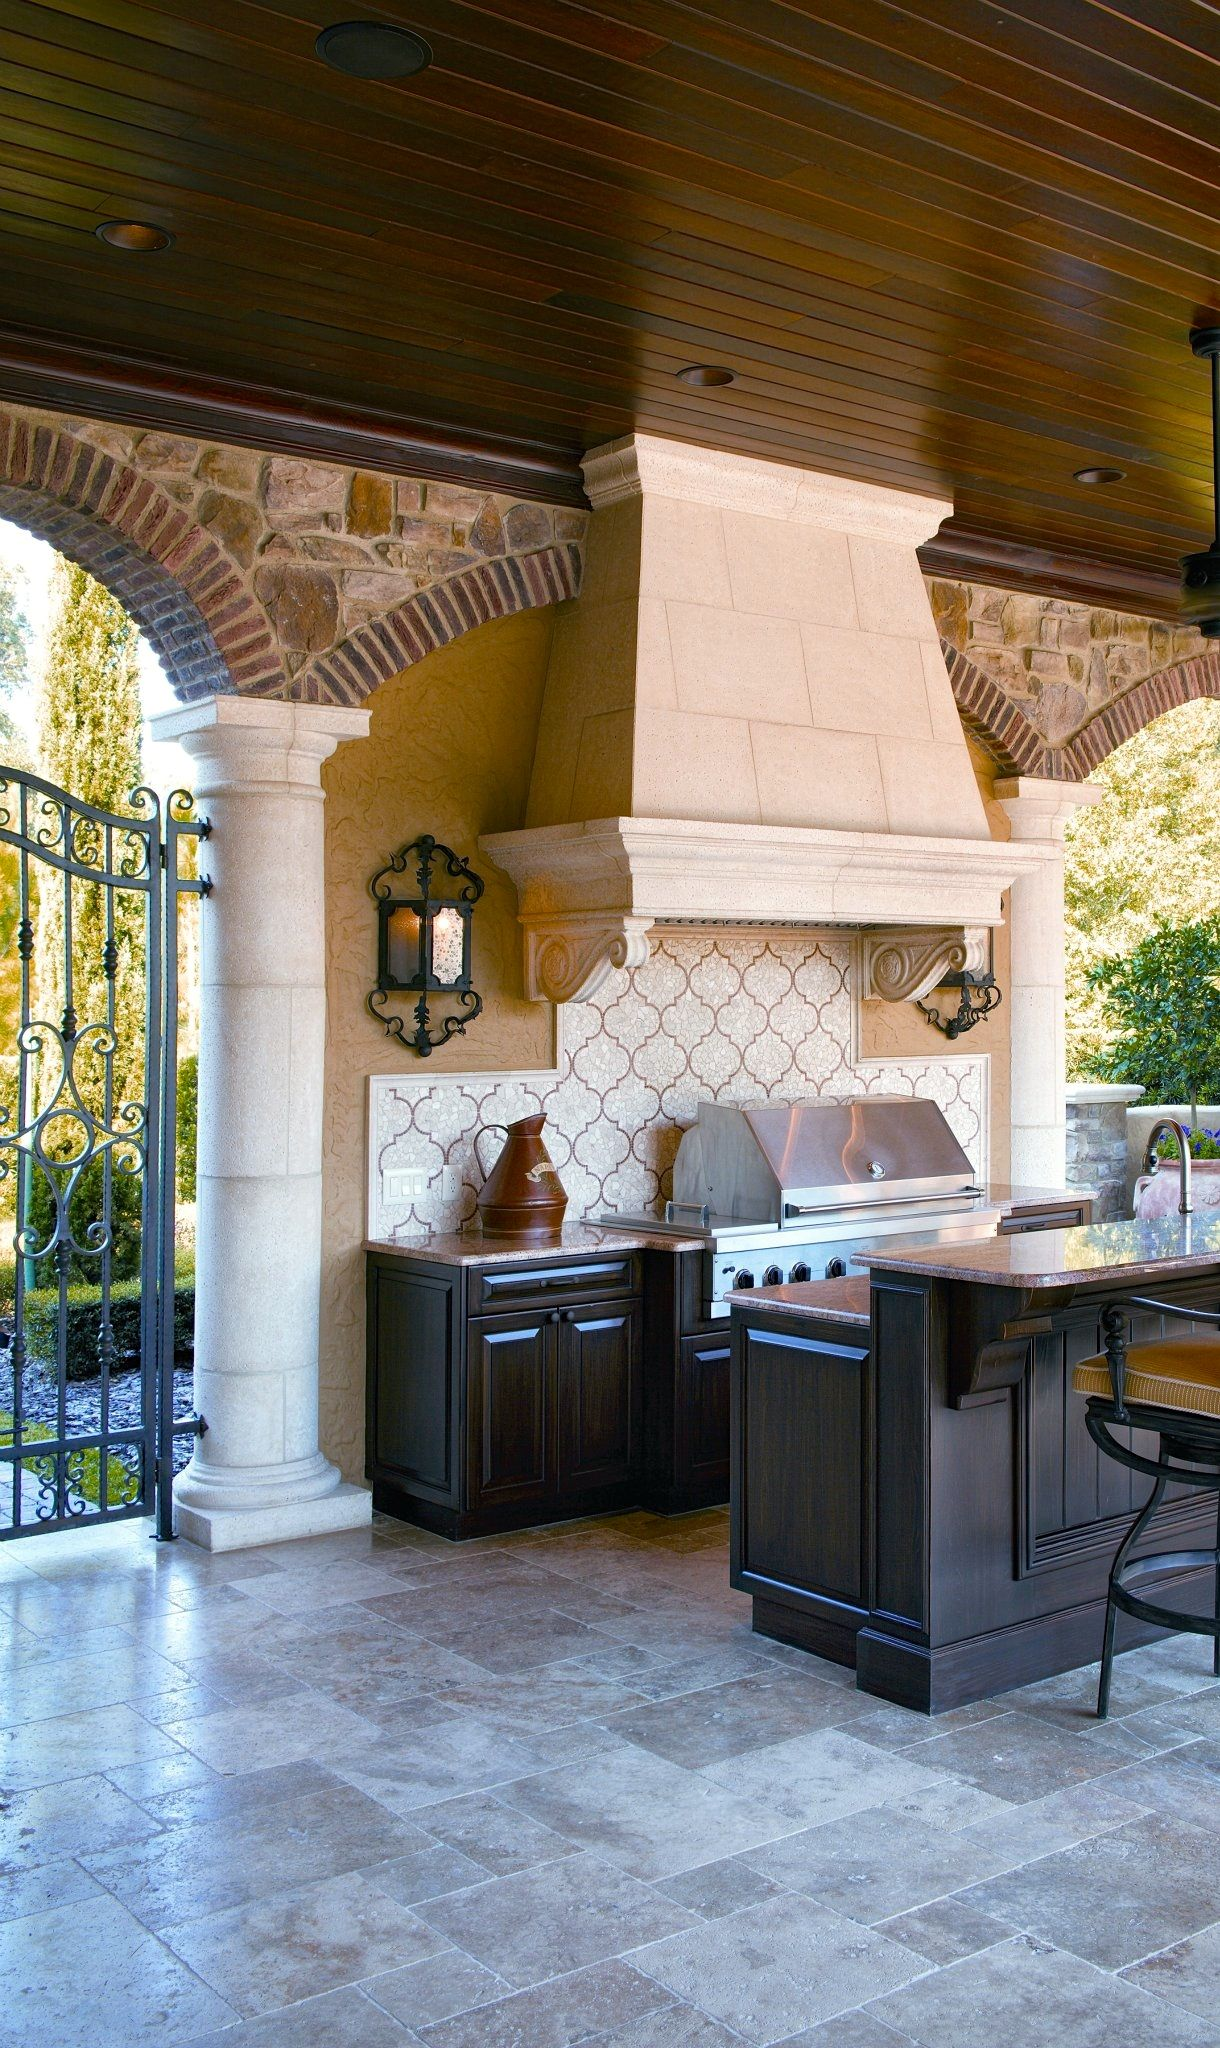 Cocoscollection Outdoor Kitchen With Large Range Hood And Tile Backsplash Nice Mix Of Col With Images Outdoor Kitchen Design Outdoor Kitchen Outdoor Kitchen Countertops